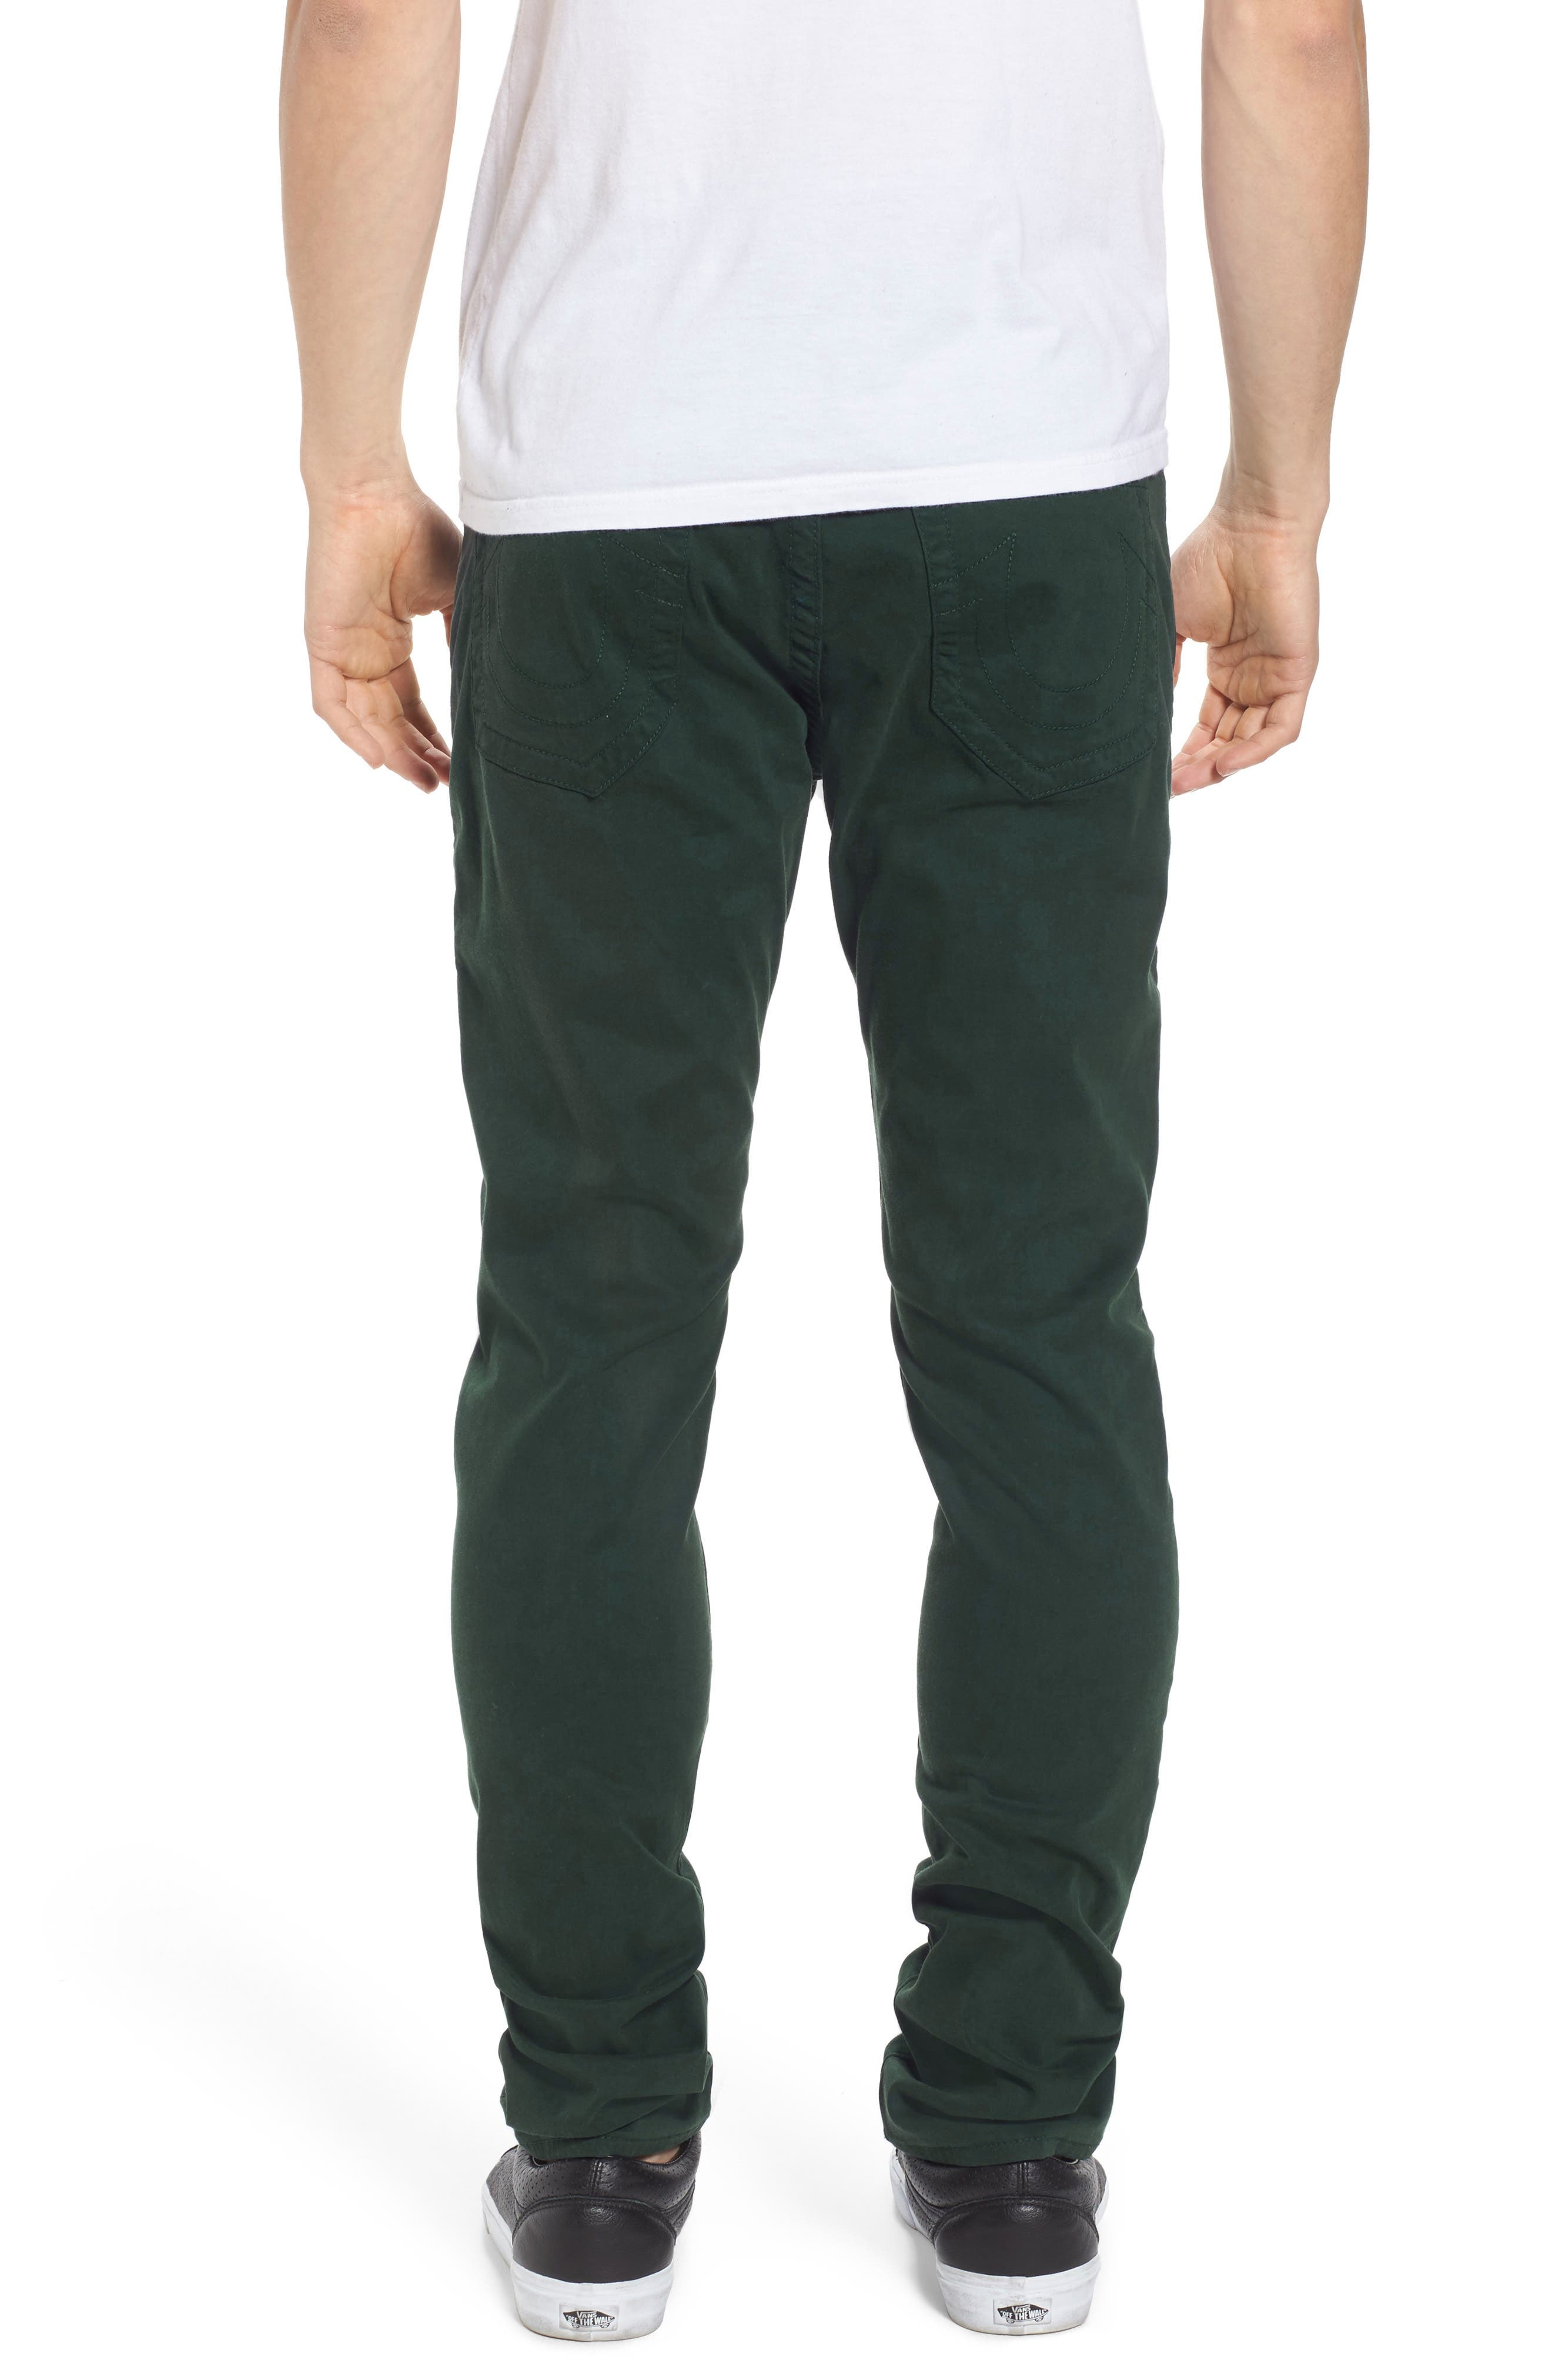 Rocco Skinny Fit Jeans,                             Alternate thumbnail 2, color,                             300